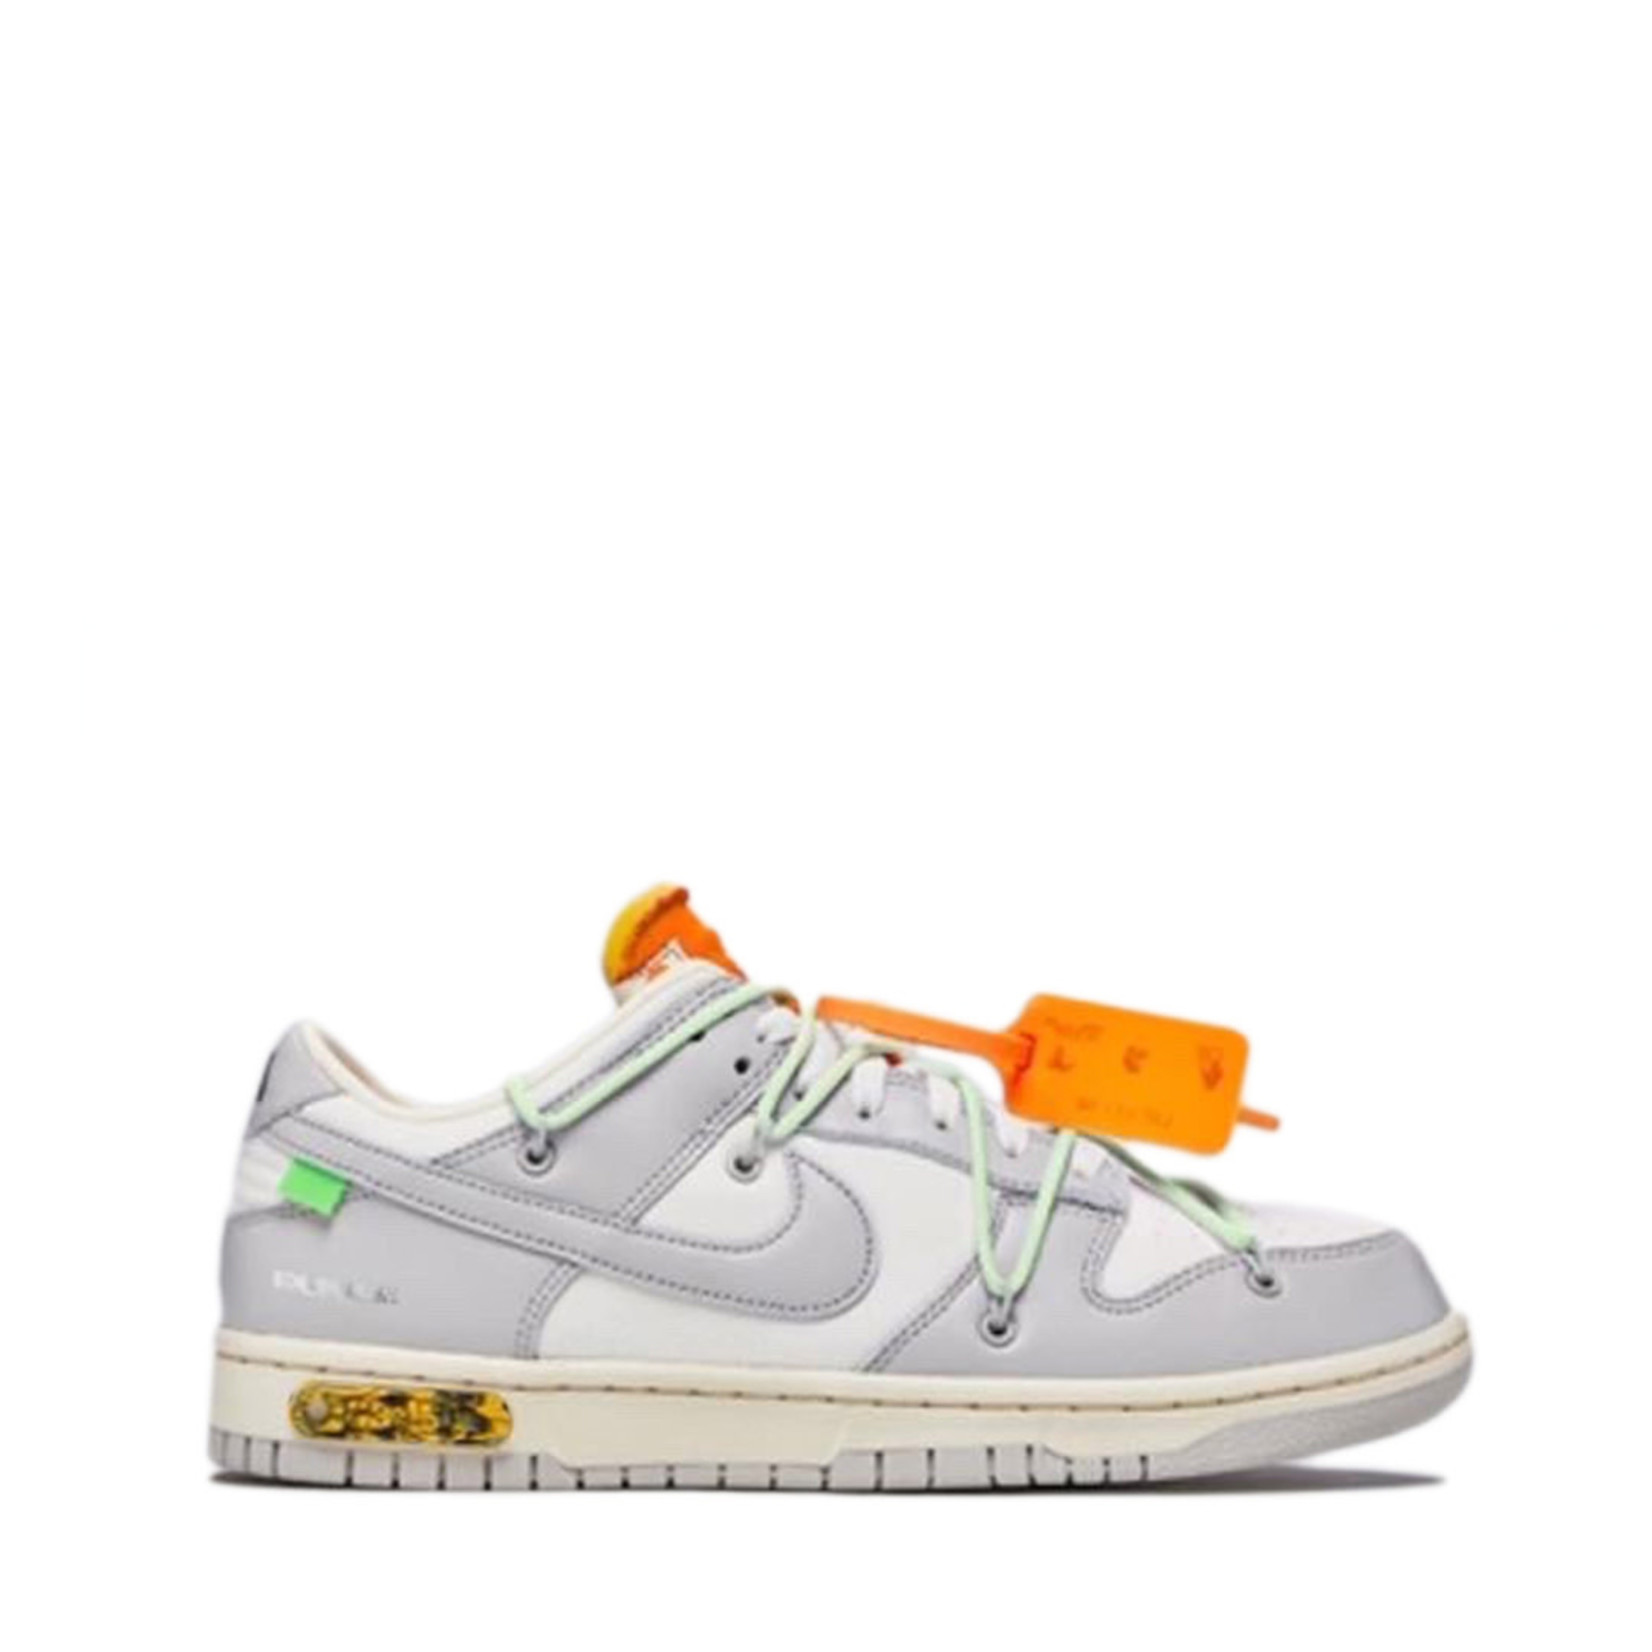 Off-White Nike Dunk Low Off-White Lot 43